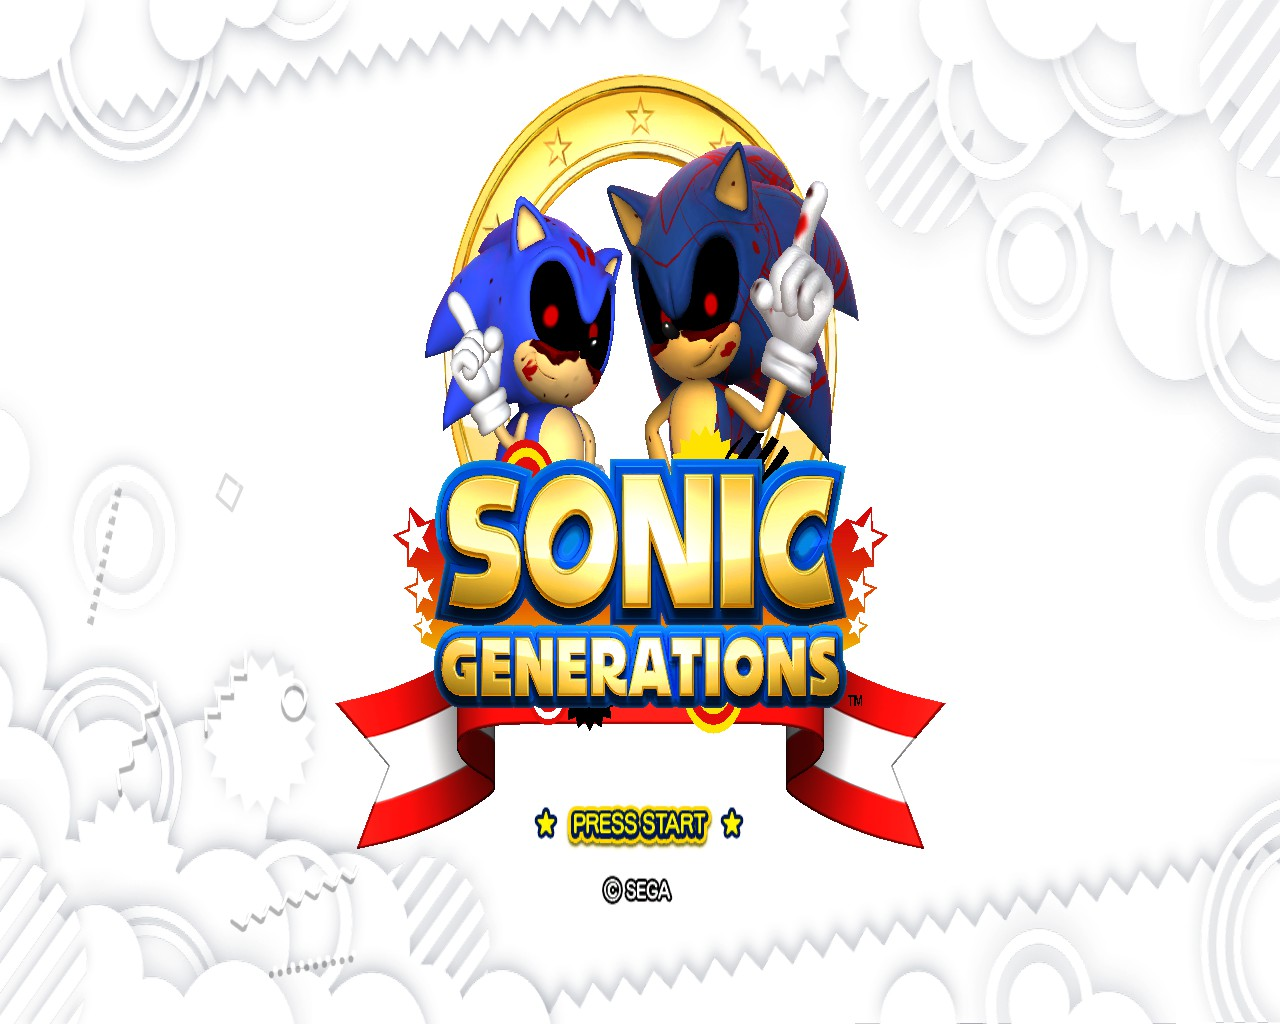 Image 3 - Sonic EXE Generations mod for Sonic Generations